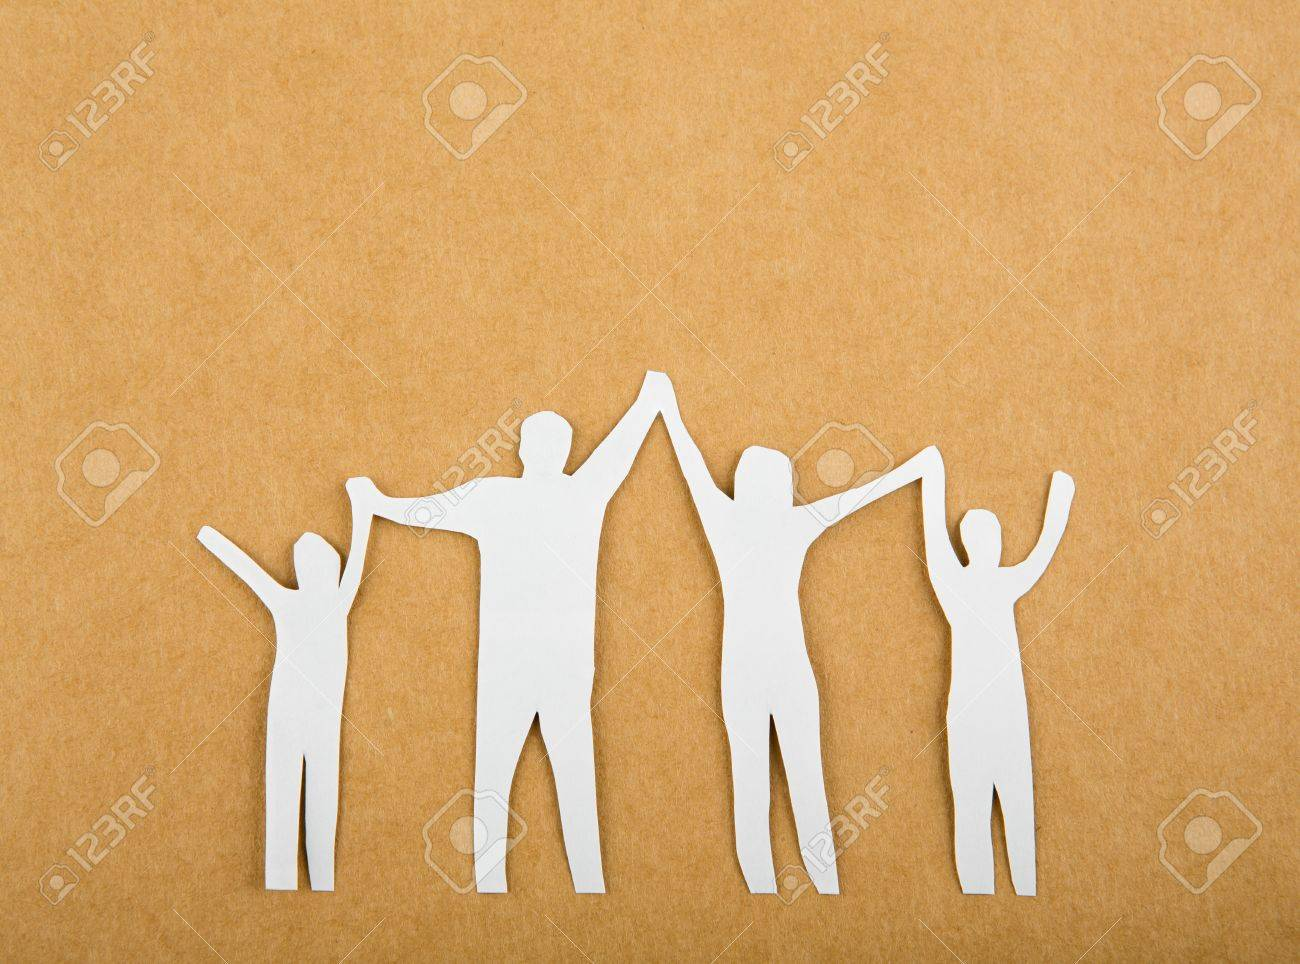 Paper cut of Family Stock Photo - 16526320